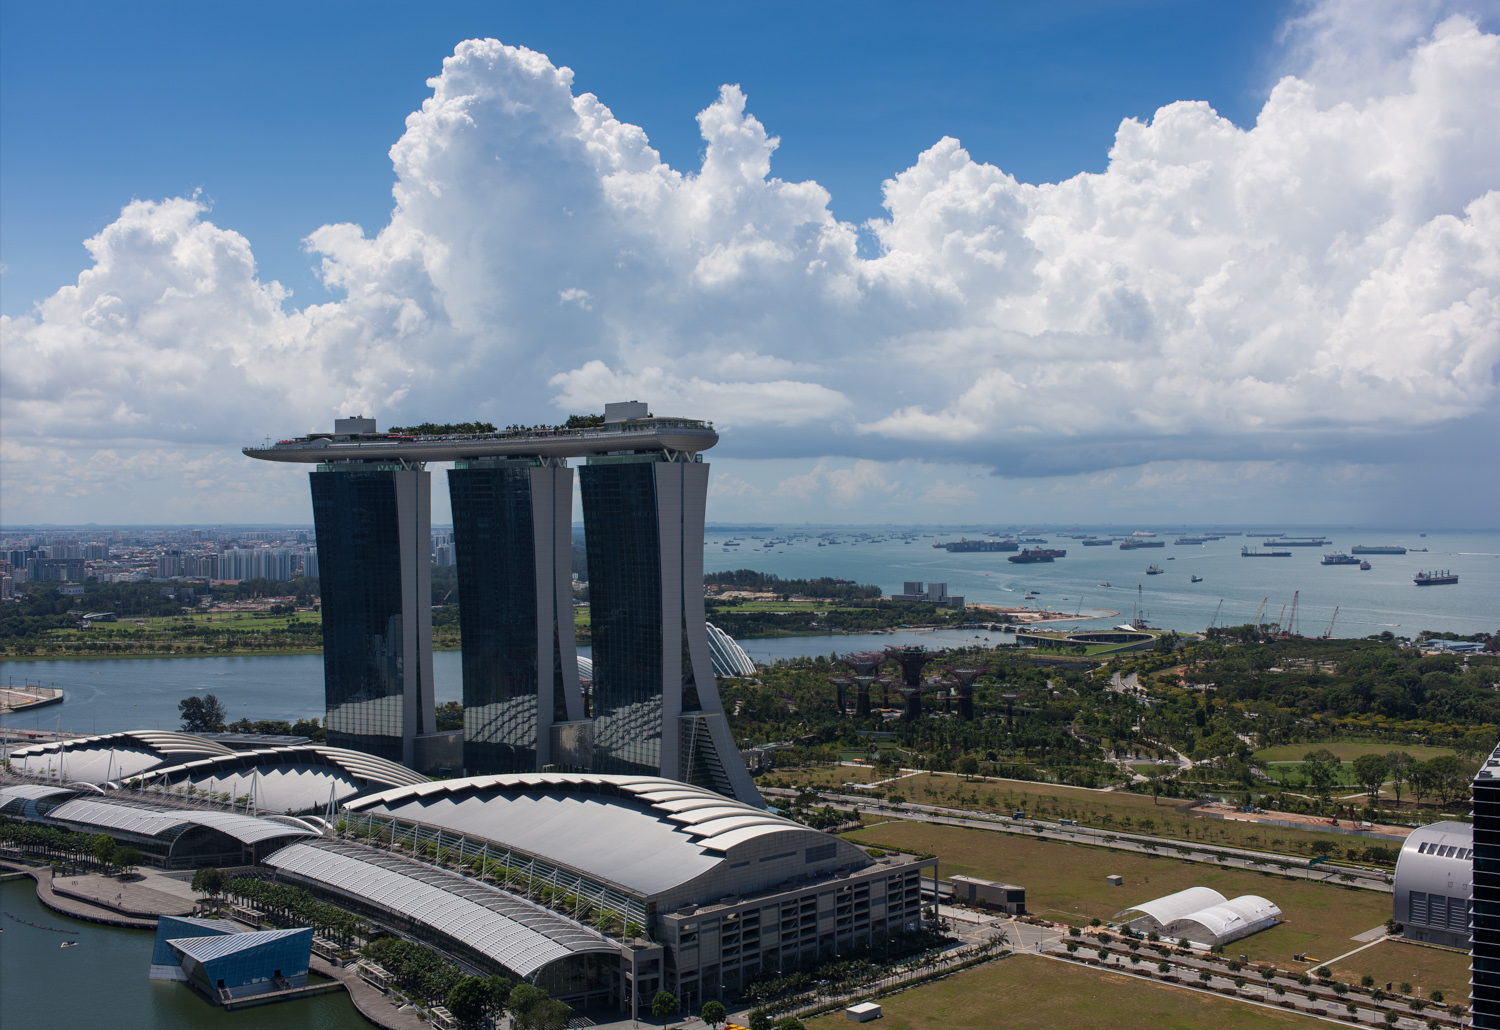 Clouds overMarina Bay Sands (HDR)